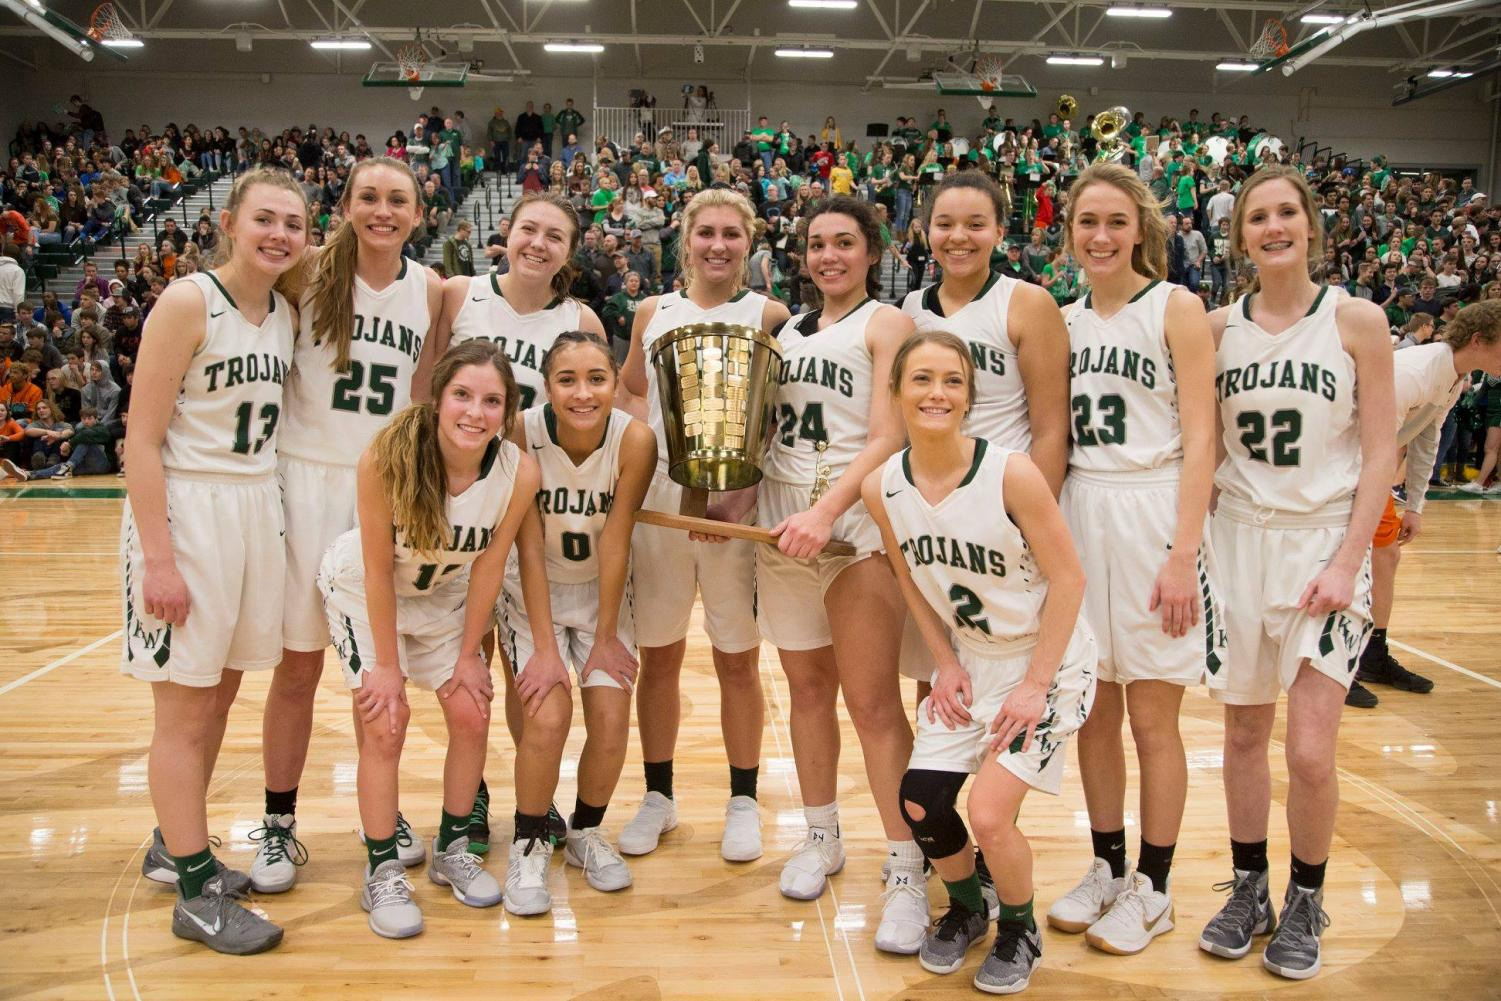 The Lady Trojans pose with the Peach Basket Trophy for the first time in 8 years.  The Lady Trojans won 51-42.  The Trojans also won the trophy on the boys side with a final score of 55-47.  This is the first time both trophies will both be at KW since 1996.